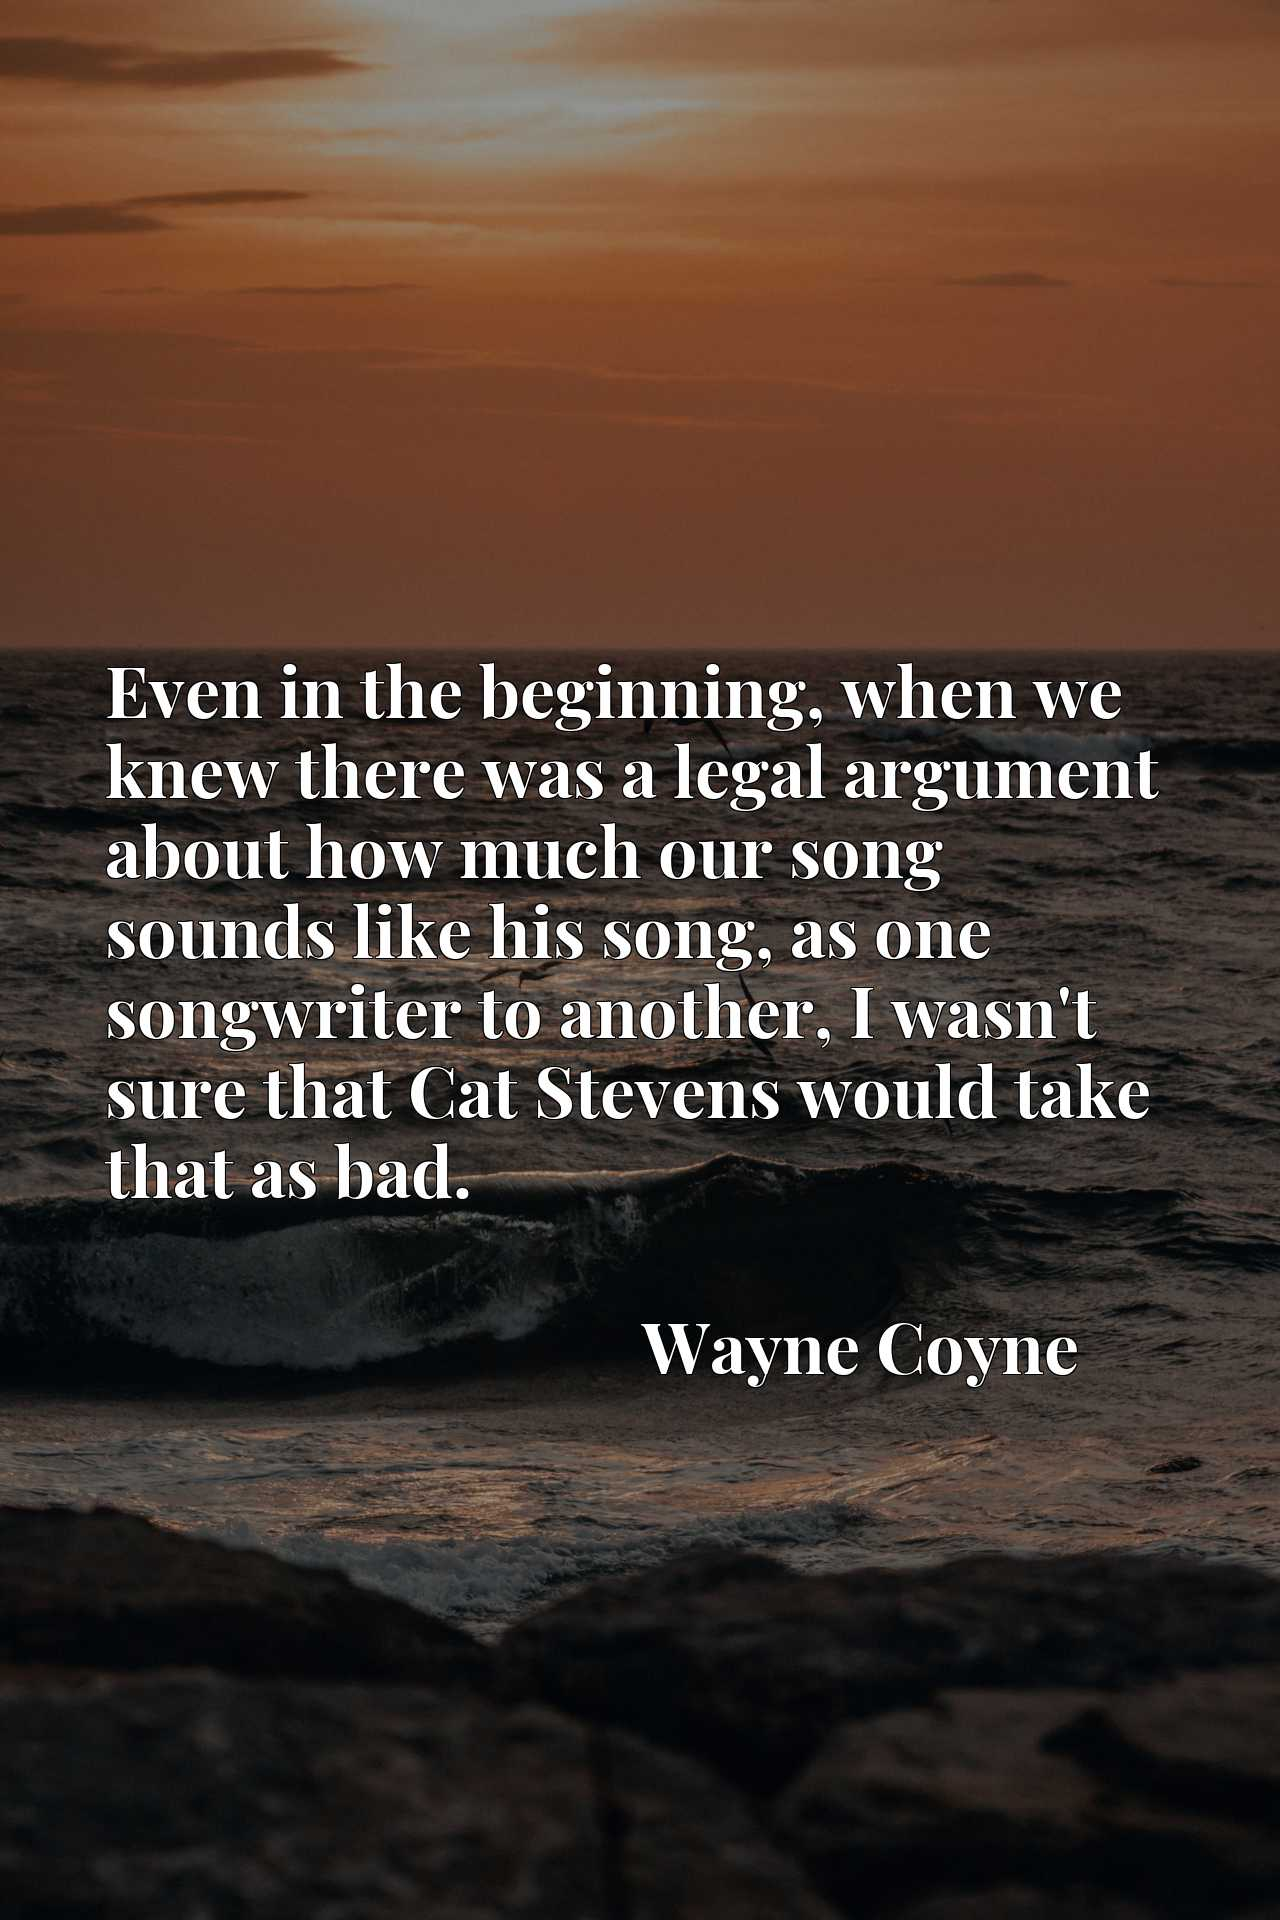 Quote Picture :Even in the beginning, when we knew there was a legal argument about how much our song sounds like his song, as one songwriter to another, I wasn't sure that Cat Stevens would take that as bad.